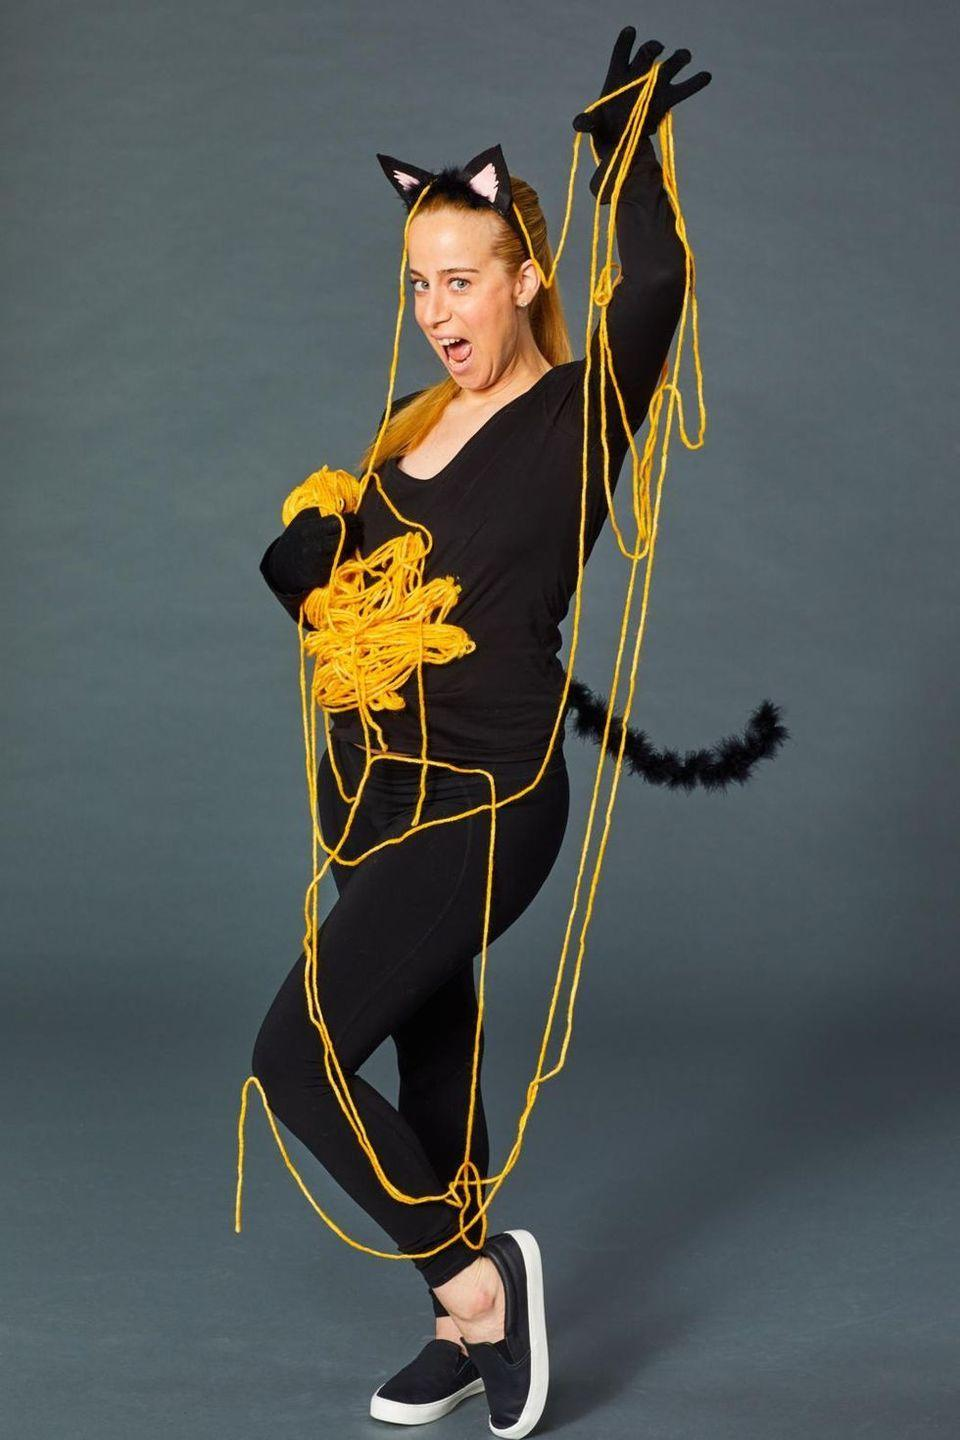 """<p>If you love cats, but not the sexy kitty look, this DIY Halloween costume is the perfect mommy-approved option. This low-maintenance costume makes it easy to put together since all you need is a black <a href=""""https://www.amazon.com/Hanes-Womens-Sport-Performance-Sleeve/dp/B01M1P3SZG/?tag=syn-yahoo-20&ascsubtag=%5Bartid%7C2141.g.33469434%5Bsrc%7Cyahoo-us"""" rel=""""nofollow noopener"""" target=""""_blank"""" data-ylk=""""slk:long-sleeved top"""" class=""""link rapid-noclick-resp"""">long-sleeved top</a>, <a href=""""https://www.amazon.com/90-Degree-Reflex-Interlink-Leggings/dp/B07N1YX9LF/?tag=syn-yahoo-20&ascsubtag=%5Bartid%7C2141.g.33469434%5Bsrc%7Cyahoo-us"""" rel=""""nofollow noopener"""" target=""""_blank"""" data-ylk=""""slk:leggings"""" class=""""link rapid-noclick-resp"""">leggings</a>, and <a href=""""https://www.amazon.com/Seeksmile-Spandex-Gloves-Available-Size/dp/B00X5FAF9I/?tag=syn-yahoo-20&ascsubtag=%5Bartid%7C2141.g.33469434%5Bsrc%7Cyahoo-us"""" rel=""""nofollow noopener"""" target=""""_blank"""" data-ylk=""""slk:gloves"""" class=""""link rapid-noclick-resp"""">gloves</a>. Tie it all together with a few <a href=""""https://www.amazon.com/Black-Cat-Costume-Kids-Adult/dp/B07D6YMWM3/?tag=syn-yahoo-20&ascsubtag=%5Bartid%7C2141.g.33469434%5Bsrc%7Cyahoo-us"""" rel=""""nofollow noopener"""" target=""""_blank"""" data-ylk=""""slk:feline accessories"""" class=""""link rapid-noclick-resp"""">feline accessories</a> and you're done!</p><p><a href=""""https://www.goodhousekeeping.com/holidays/halloween-ideas/g1709/homemade-halloween-costumes/?slide=8"""" rel=""""nofollow noopener"""" target=""""_blank"""" data-ylk=""""slk:Get the tutorial at Good Housekeeping »"""" class=""""link rapid-noclick-resp""""><em>Get the tutorial at Good Housekeeping »</em></a></p>"""